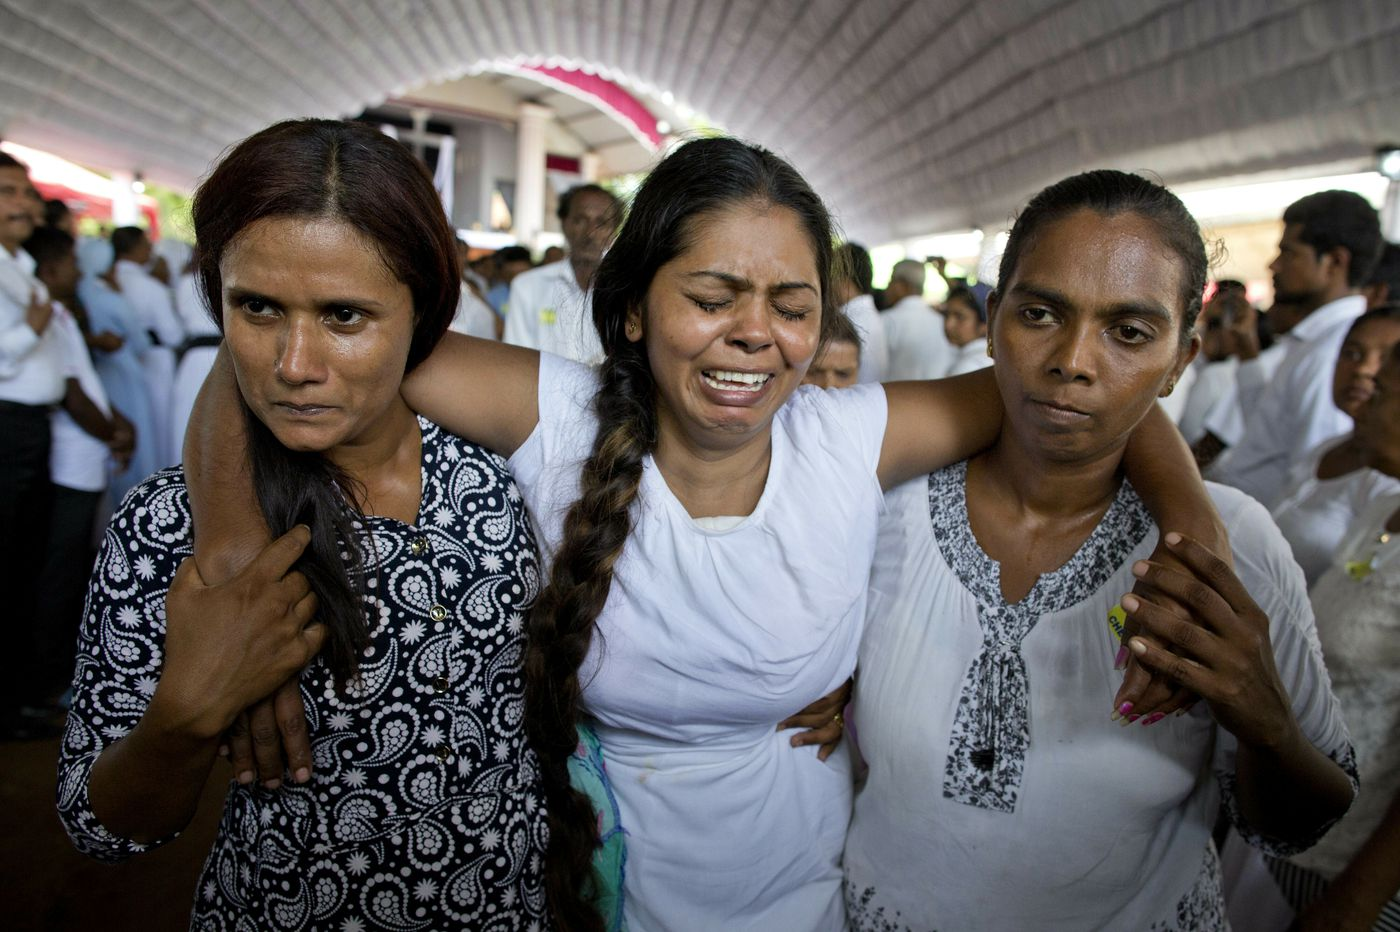 Easter bombings retaliation for New Zealand mosque shootings, Sri Lankan official says